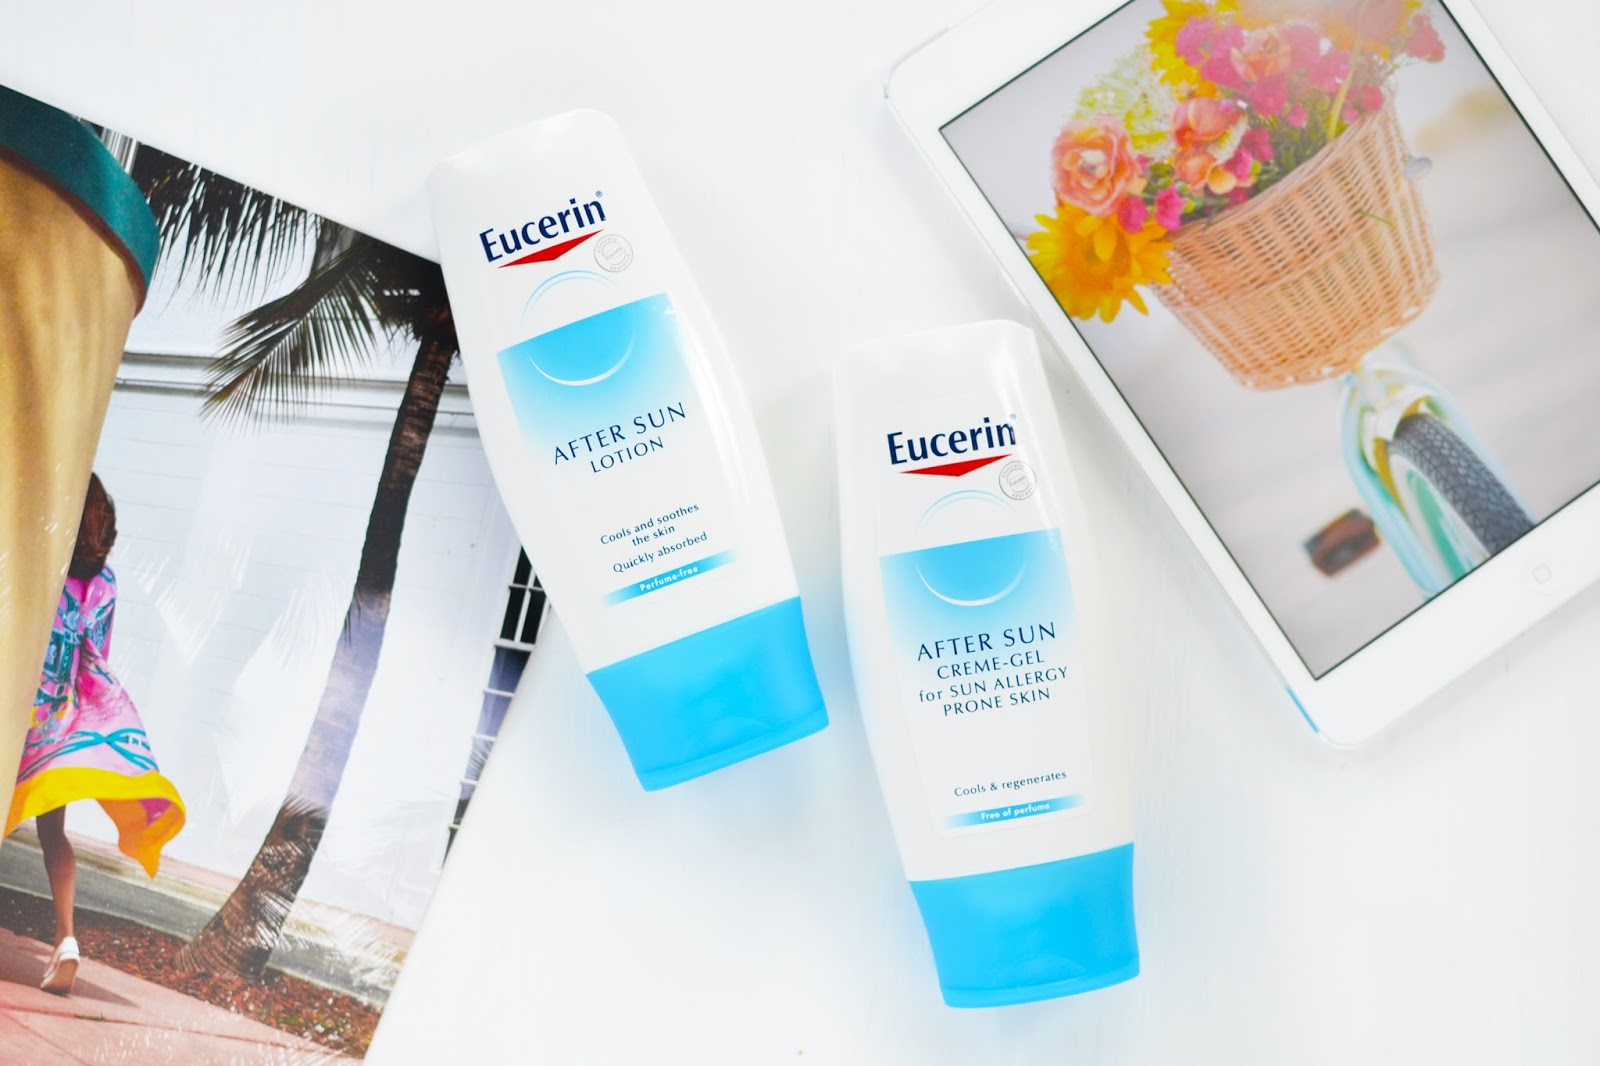 eurecin sun care after sun lotion